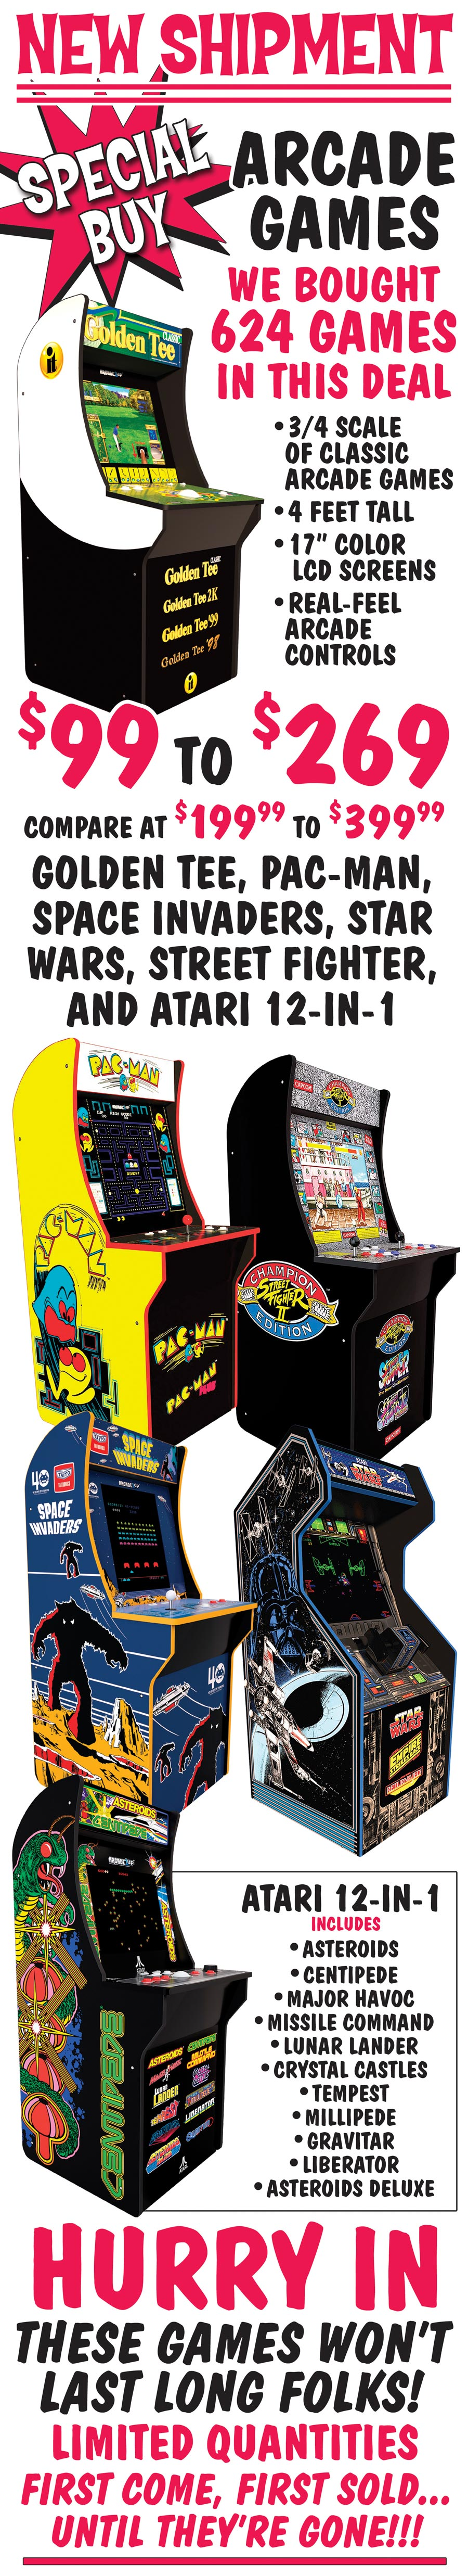 Special Buy New Shipment Of Arcade Games